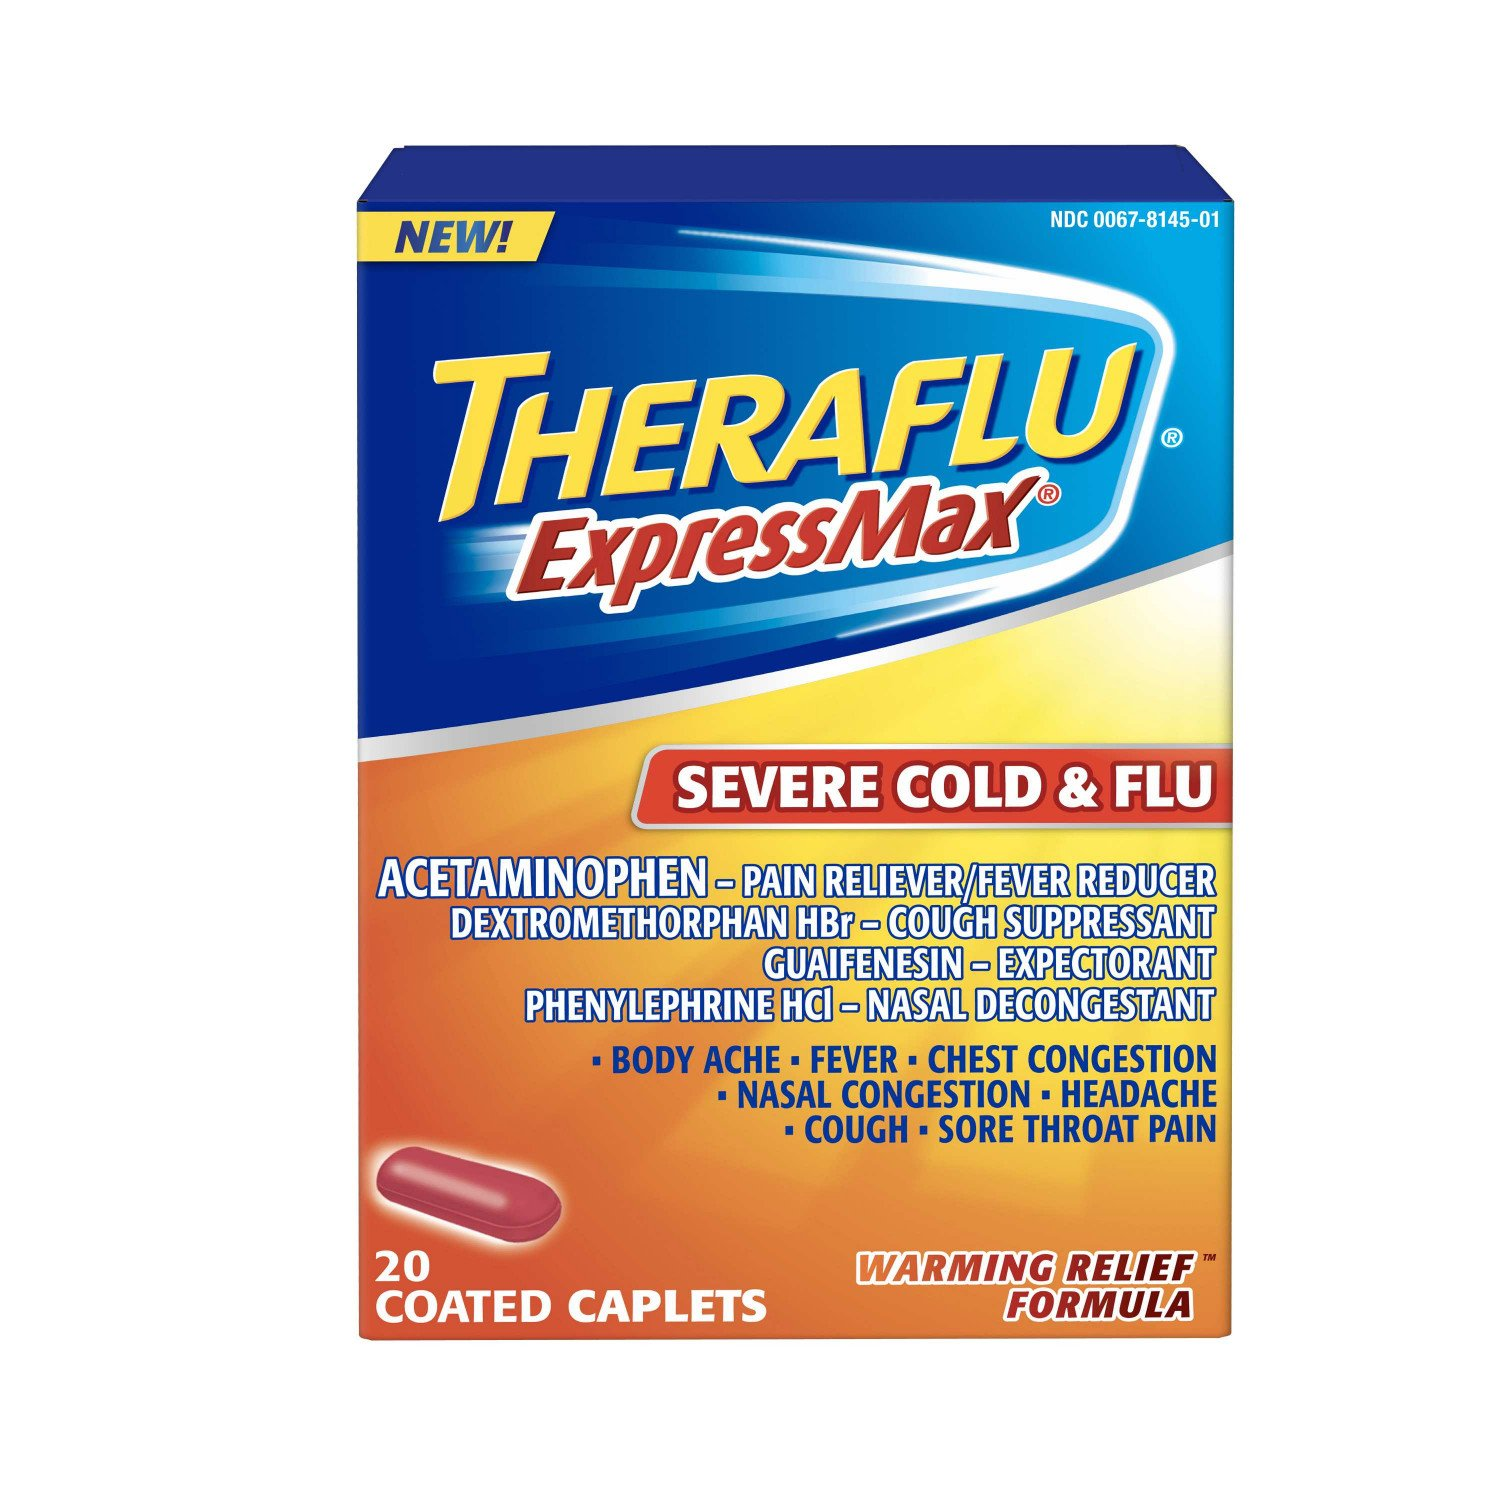 Theraflu ExpressMax Severe Cold & Flu Warming Relief Formula Coated Caplets  for Cold & Flu Relief, 20 count